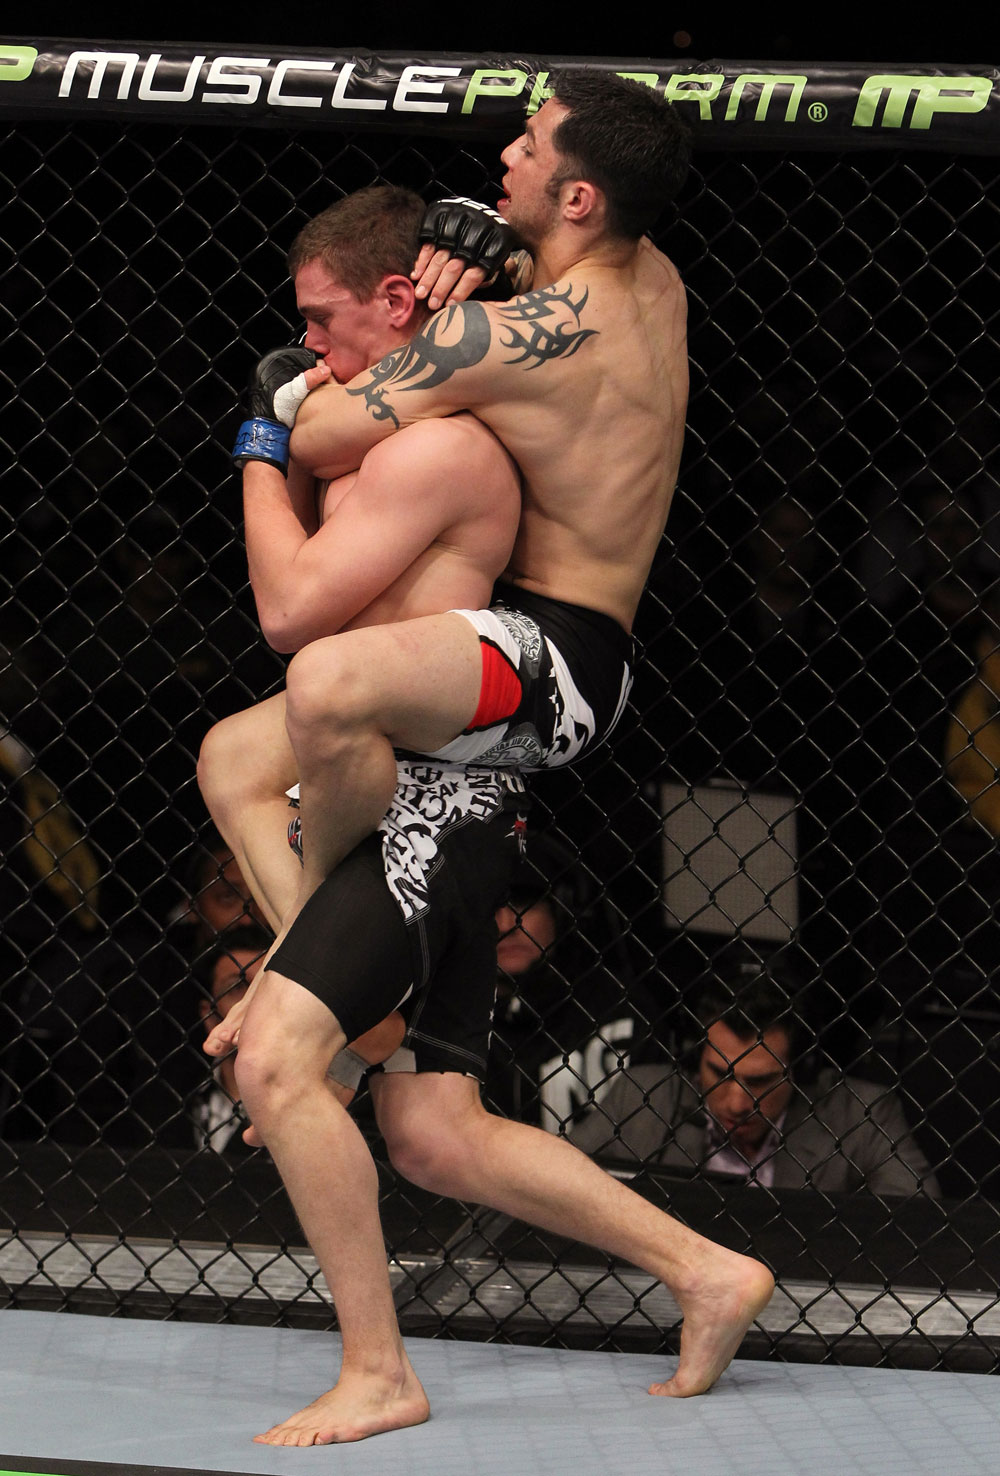 NASHVILLE, TN - JANUARY 20:  (R-L) Daniel Pineda secures a rear choke submission to defeat Pat Schilling during the UFC on FX event at Bridgestone Arena on January 20, 2012 in Nashville, Tennessee.  (Photo by Josh Hedges/Zuffa LLC/Zuffa LLC via Getty Images)